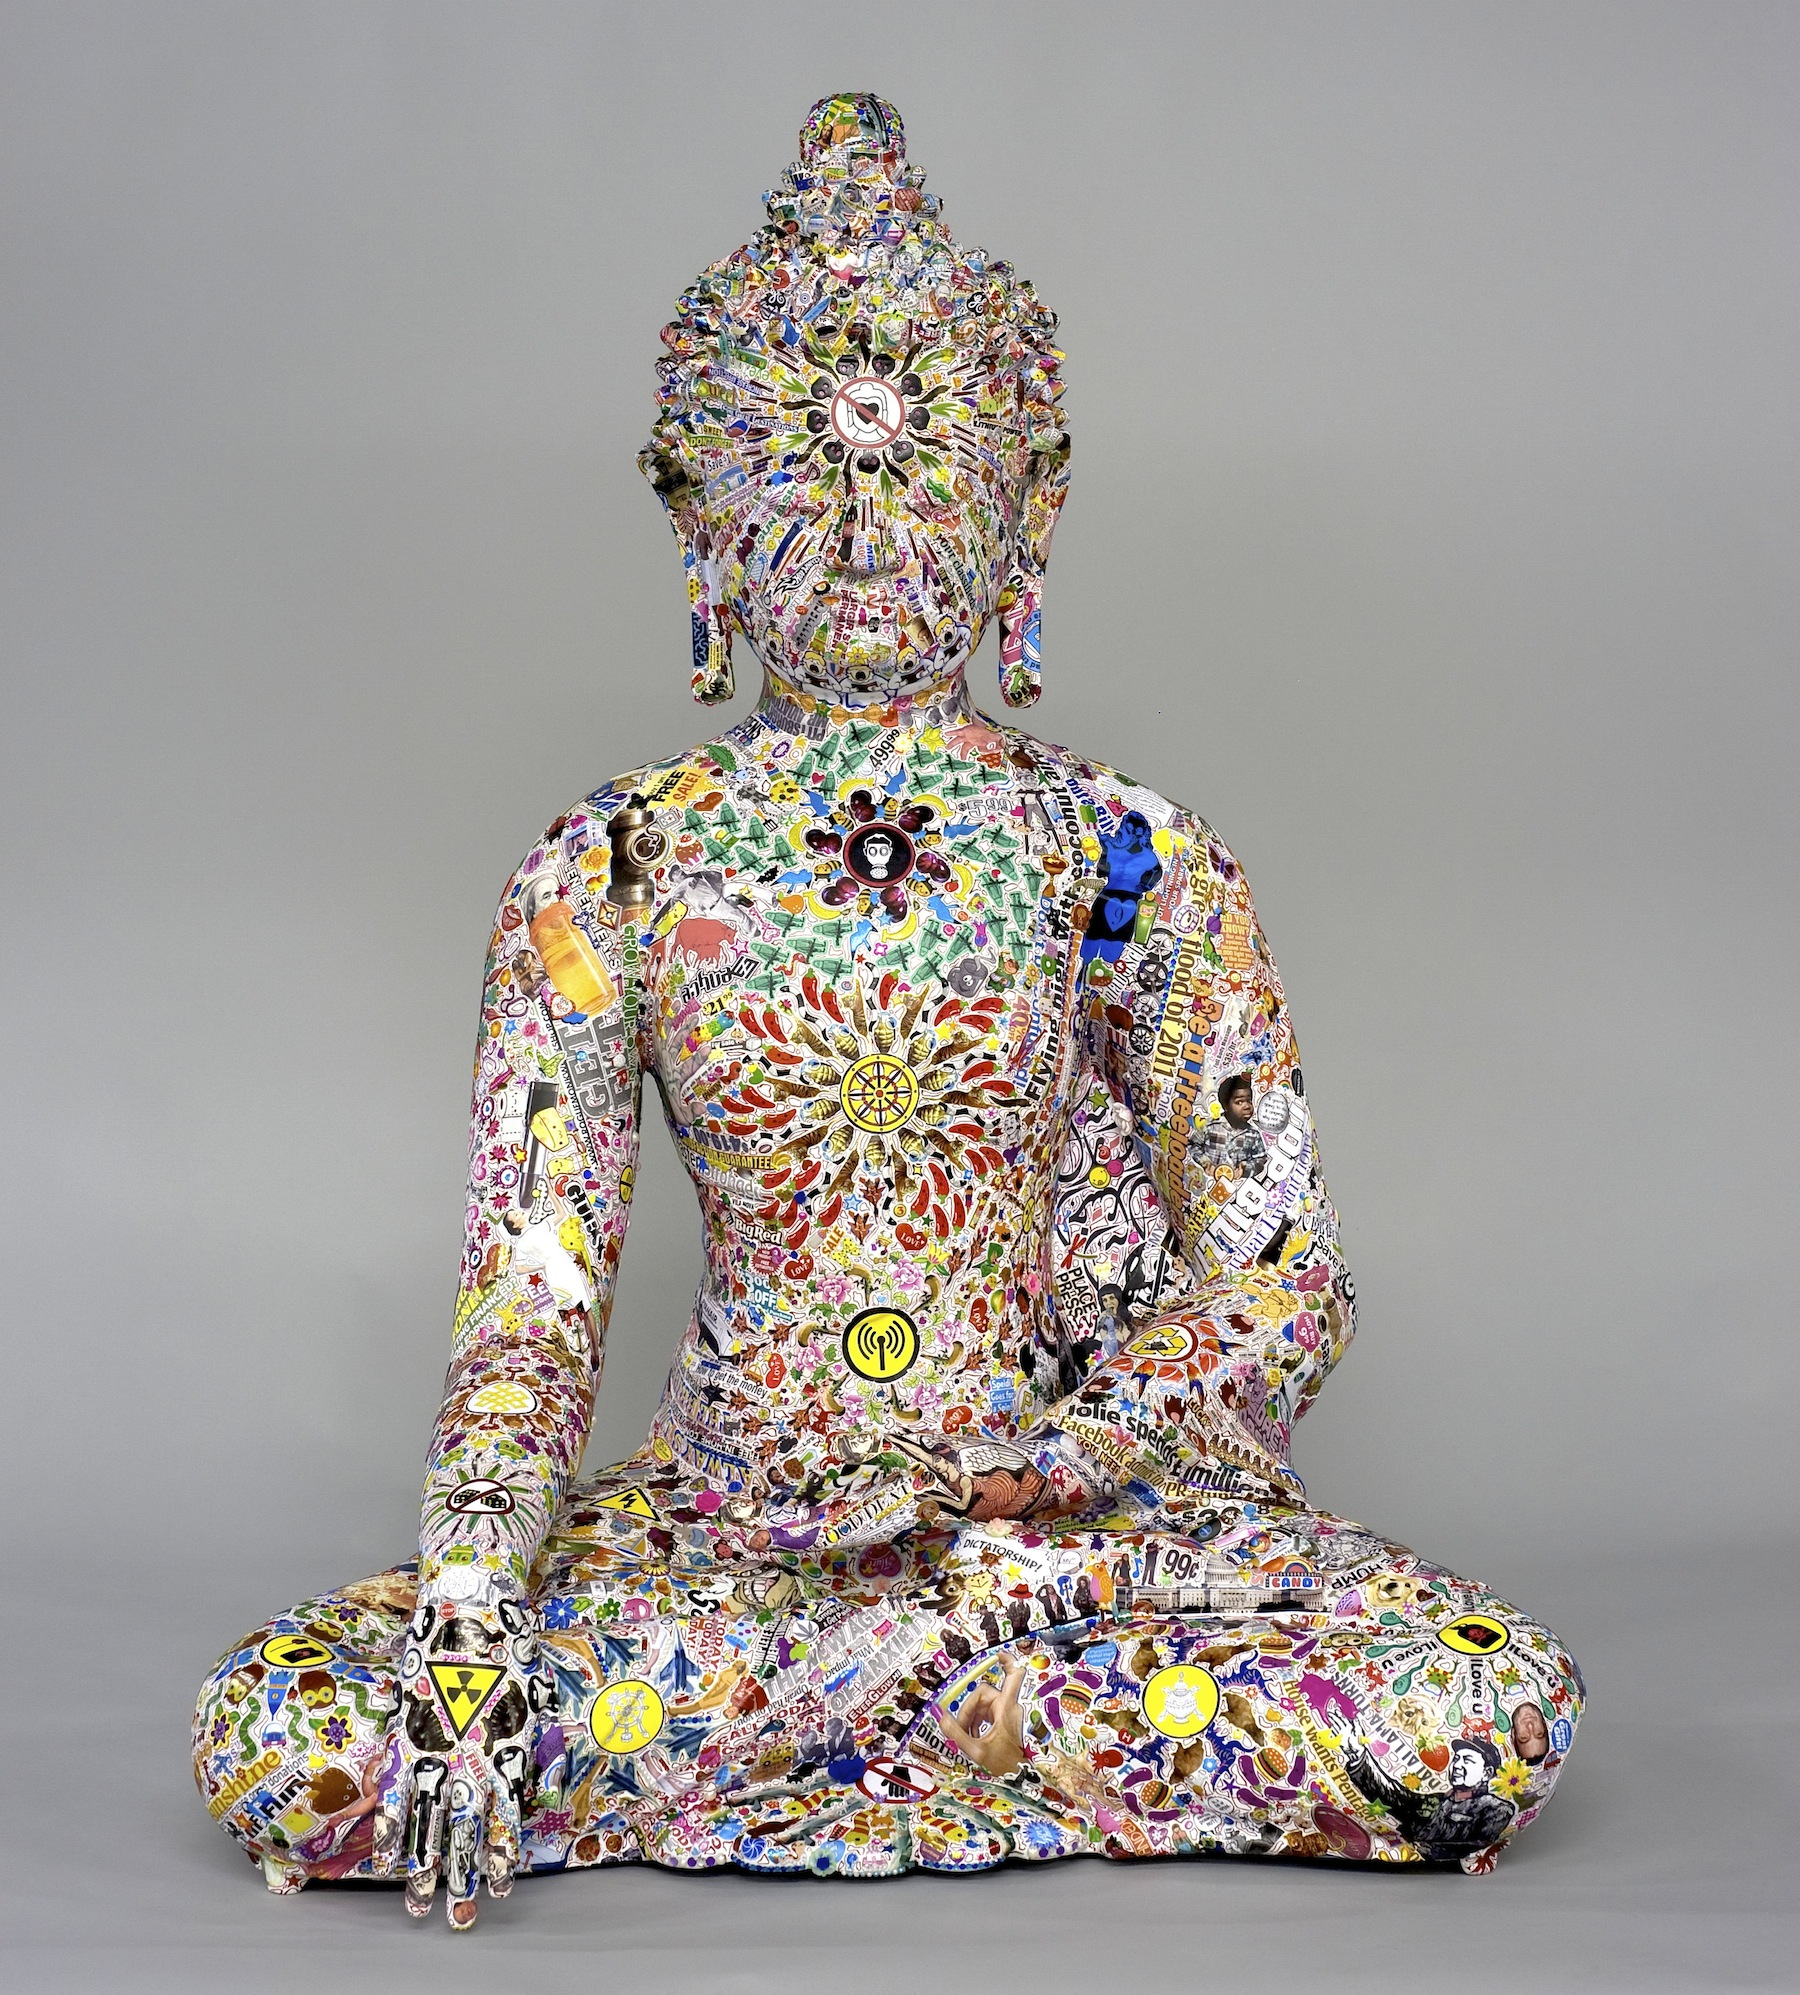 Gonkar Gyatso stickered sculpture No Love Buddah.jpg